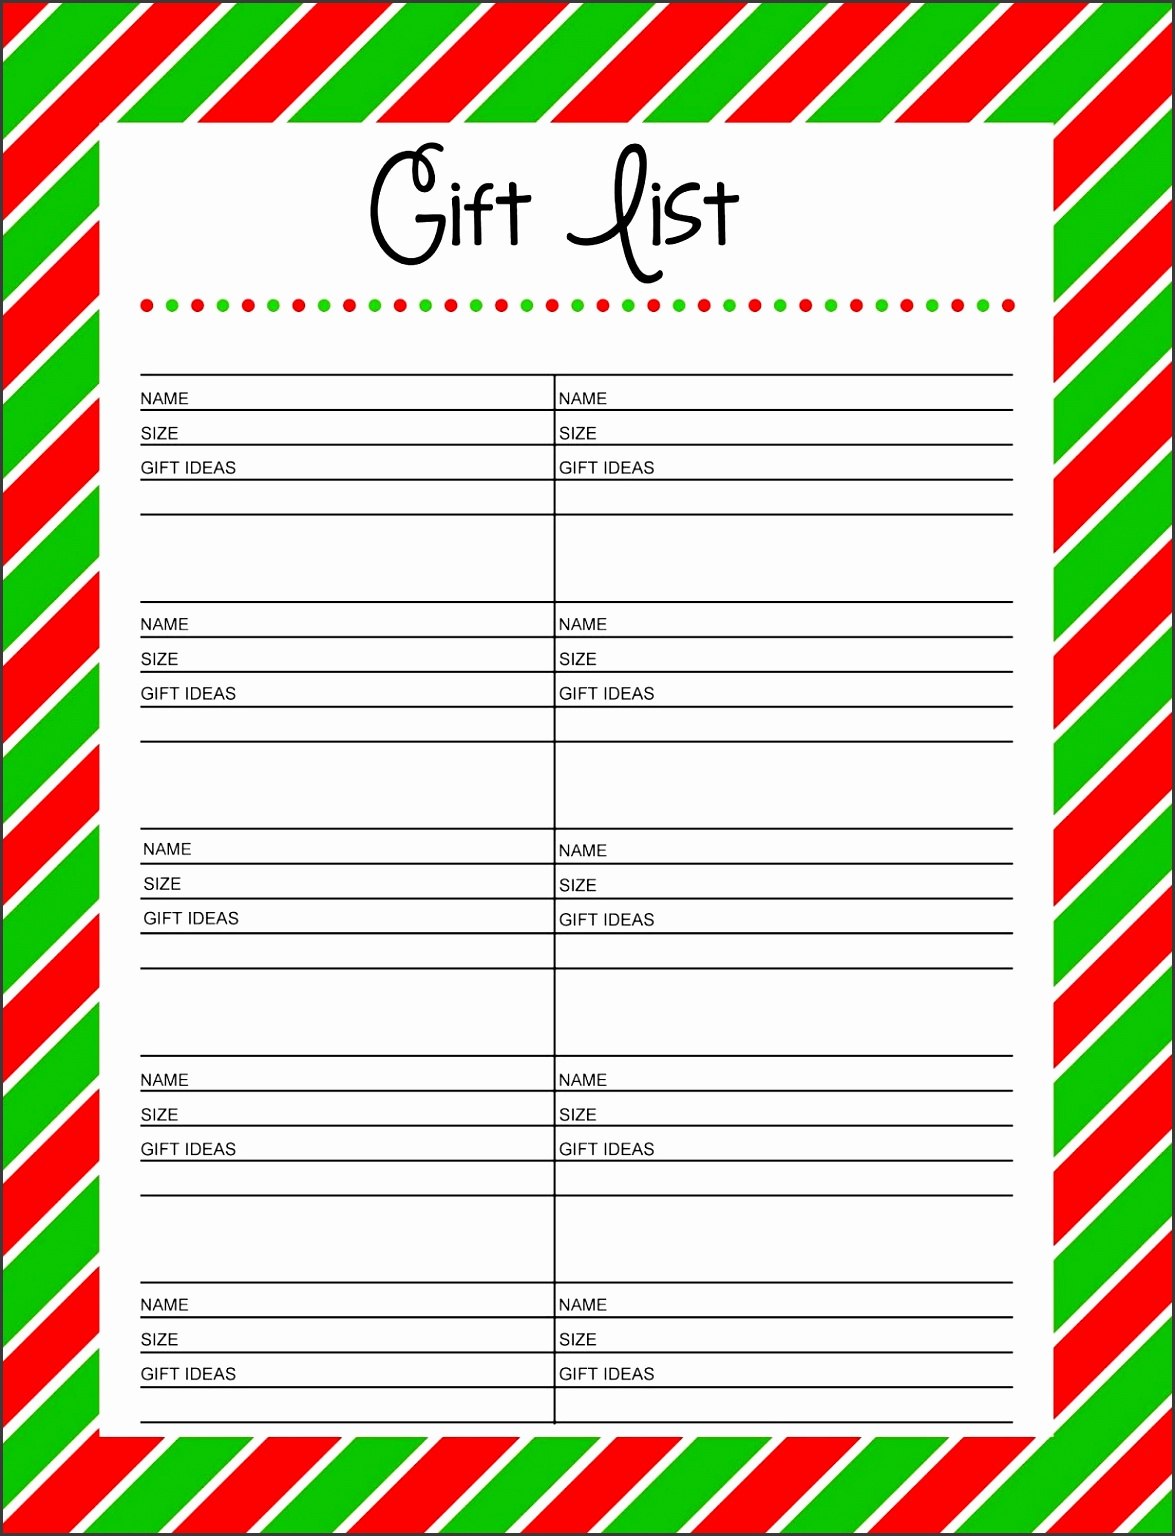 Free Printable Christmas Gift List Template – Printable Template 2017 with Christmas Gift Exchange Wish List Template 2017